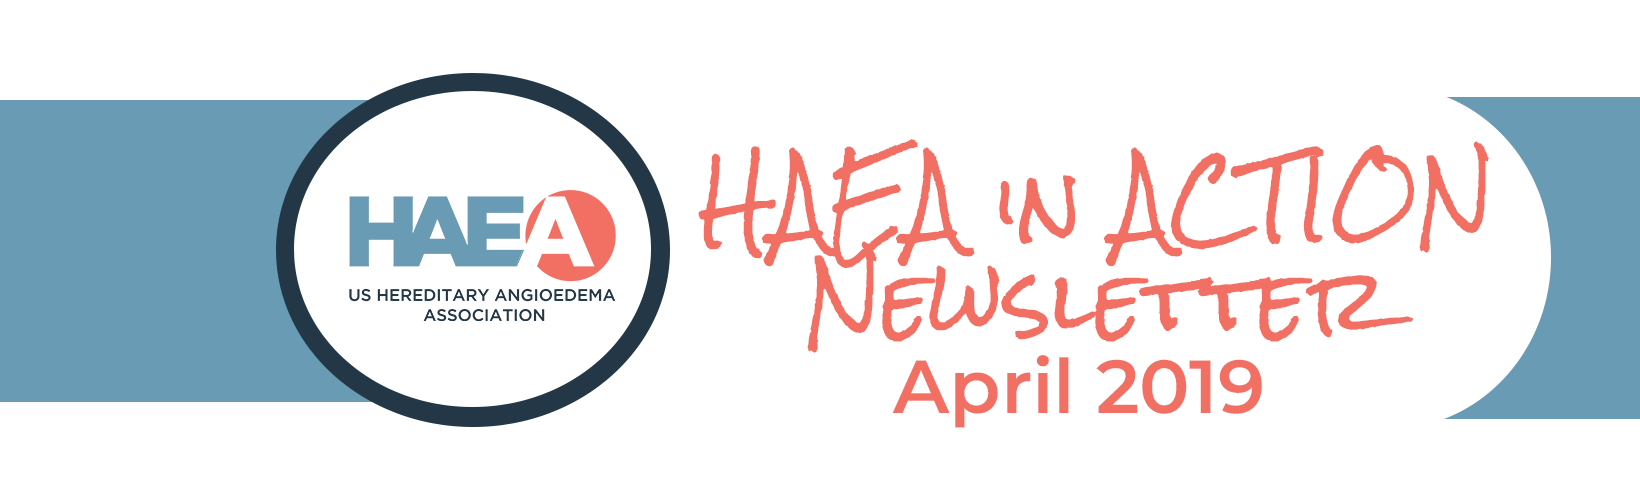 HAEA in Action April 2019 Newsletter